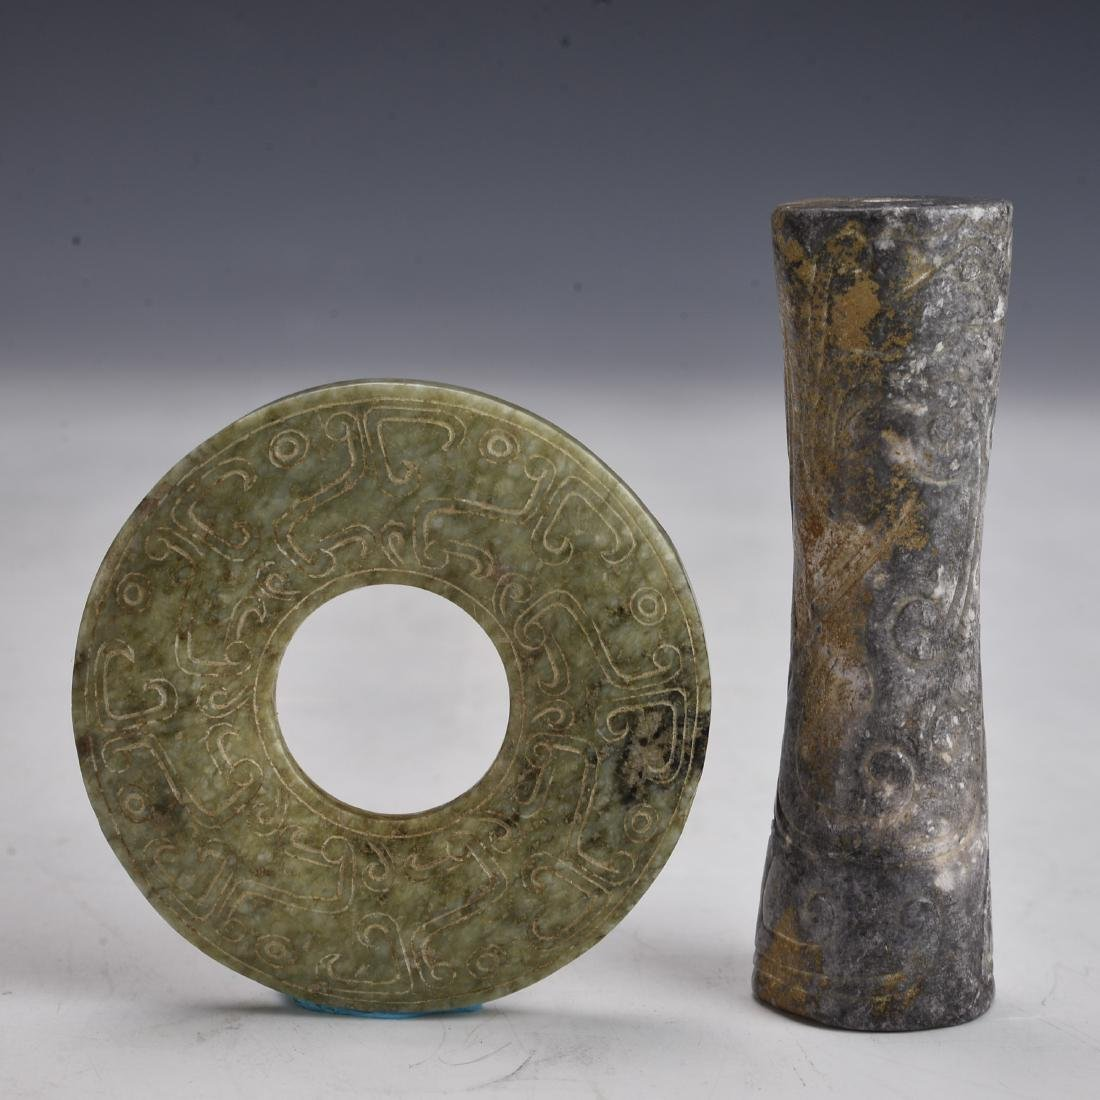 2 Pieces Chinese Archaic Jade - 2